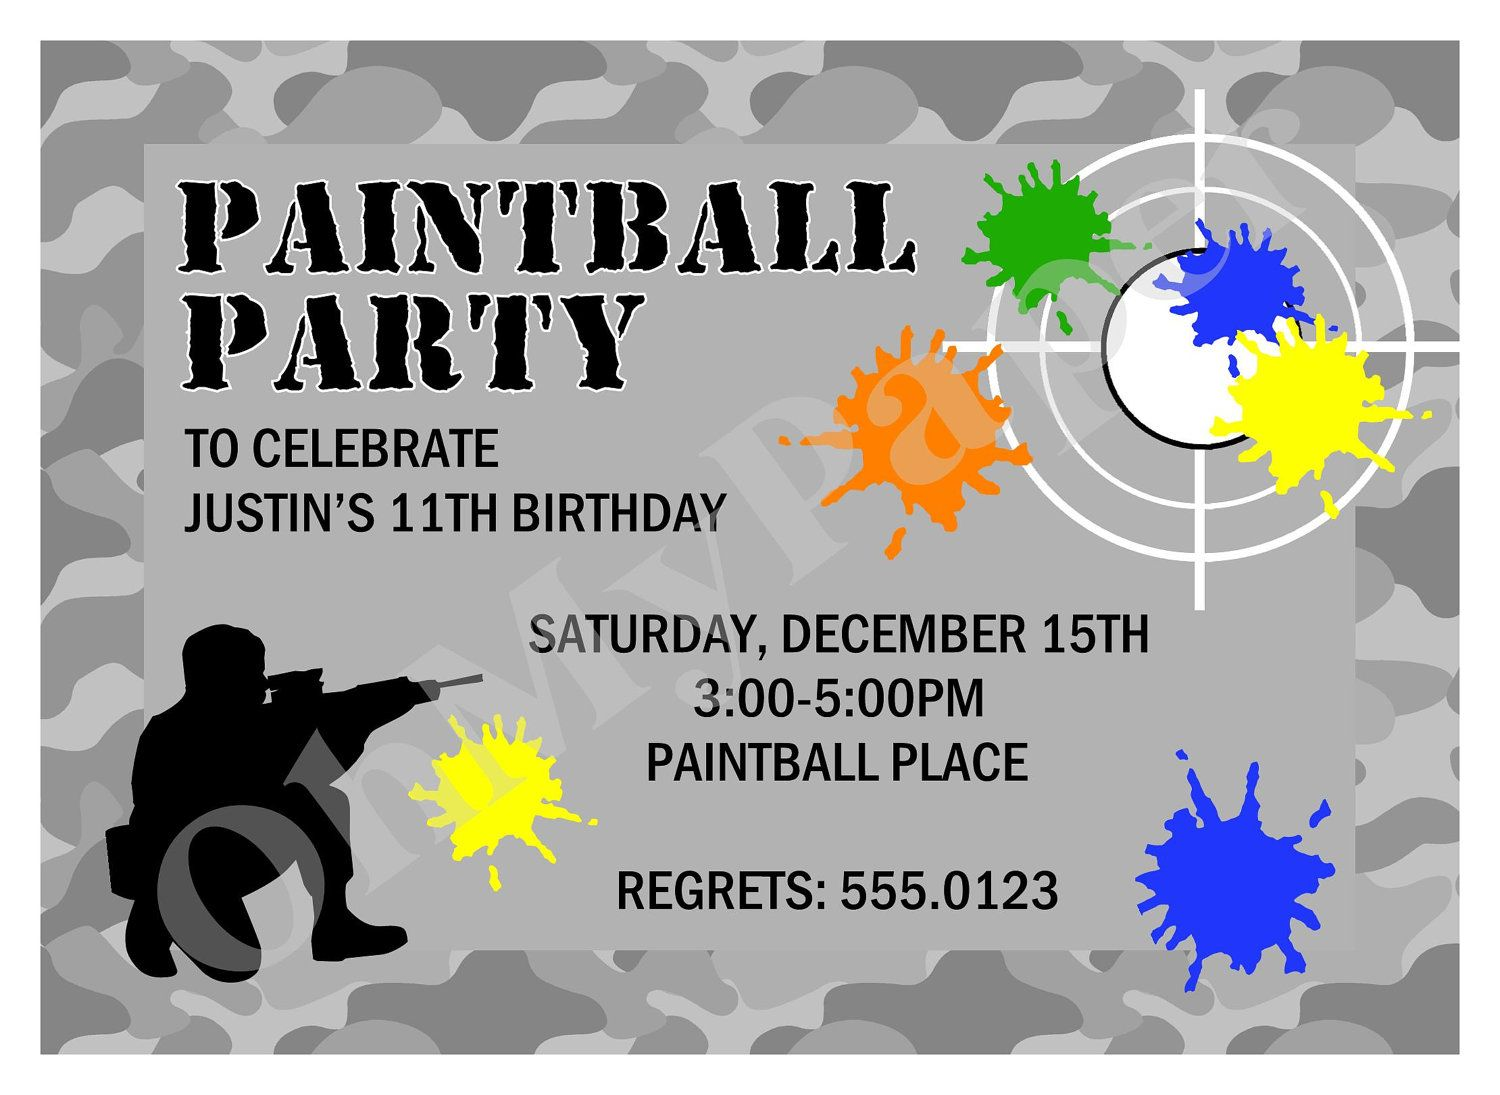 Free Paintball Party Invitation Template Paintball Party - Video game birthday party invitation template free